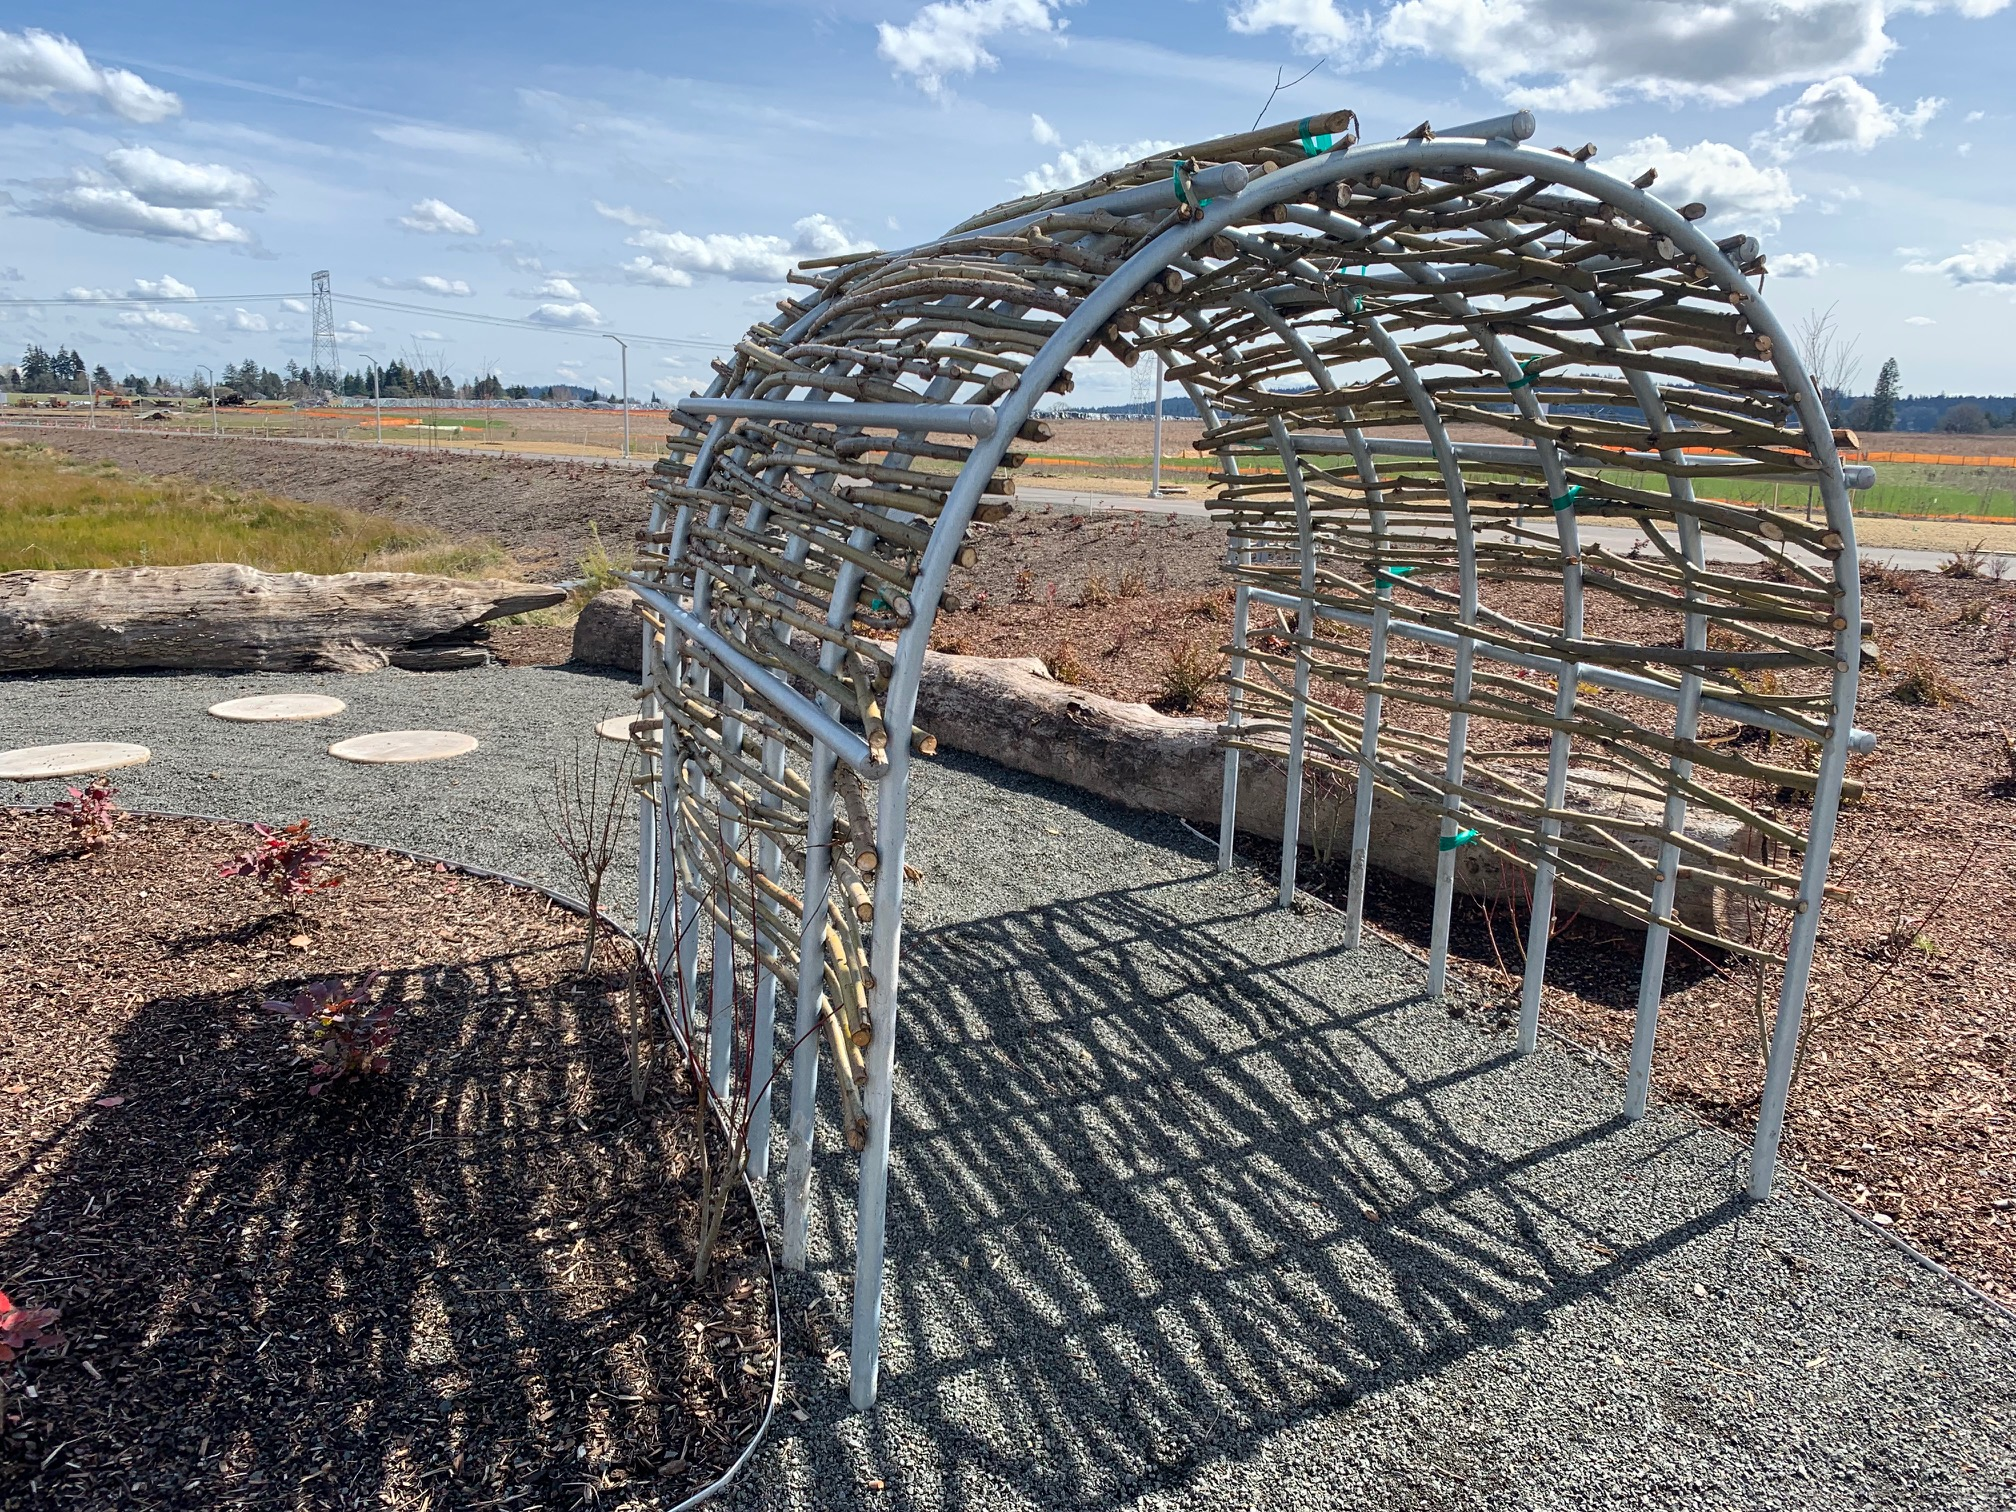 Willow tunnel structure in discovery park with little development behind